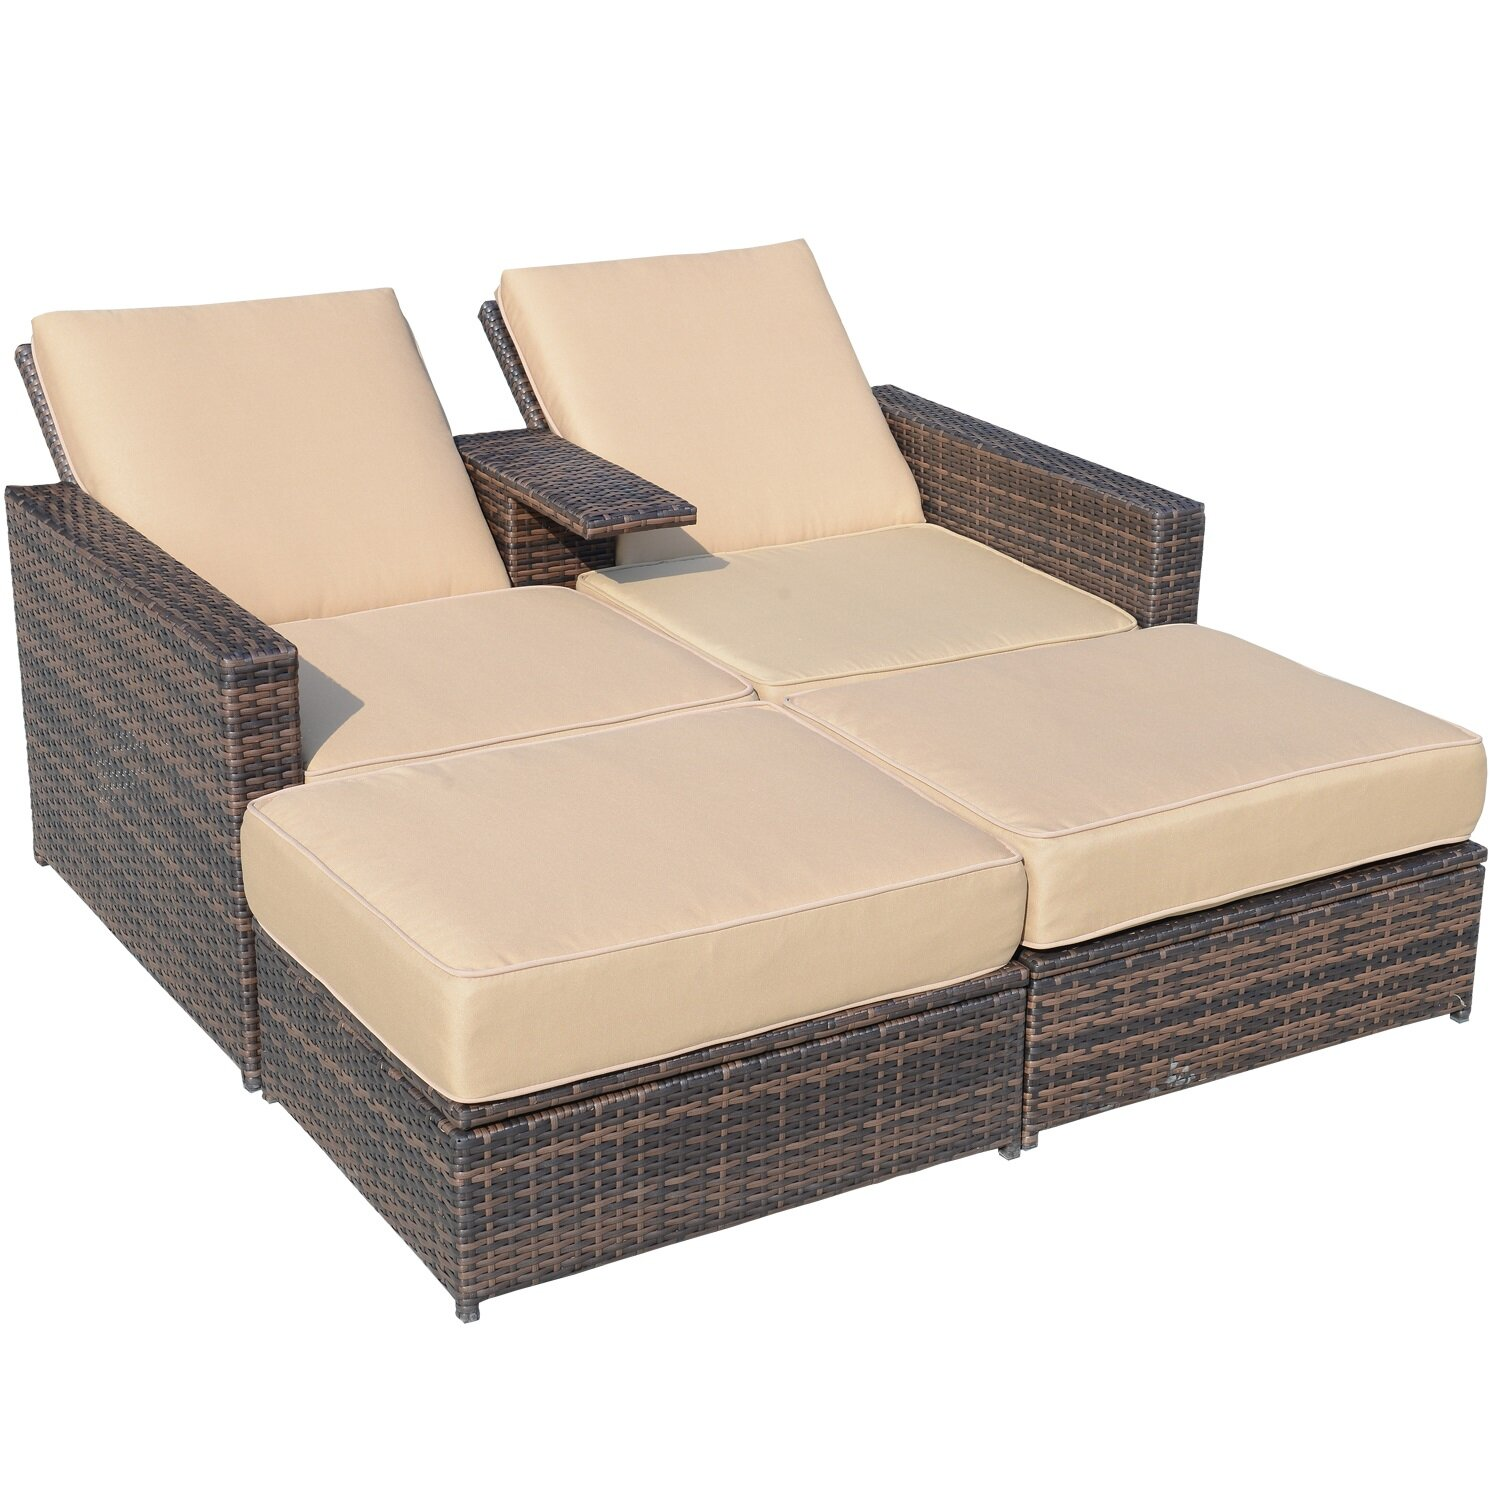 4 piece double chaise lounge with cushion wayfair. Black Bedroom Furniture Sets. Home Design Ideas